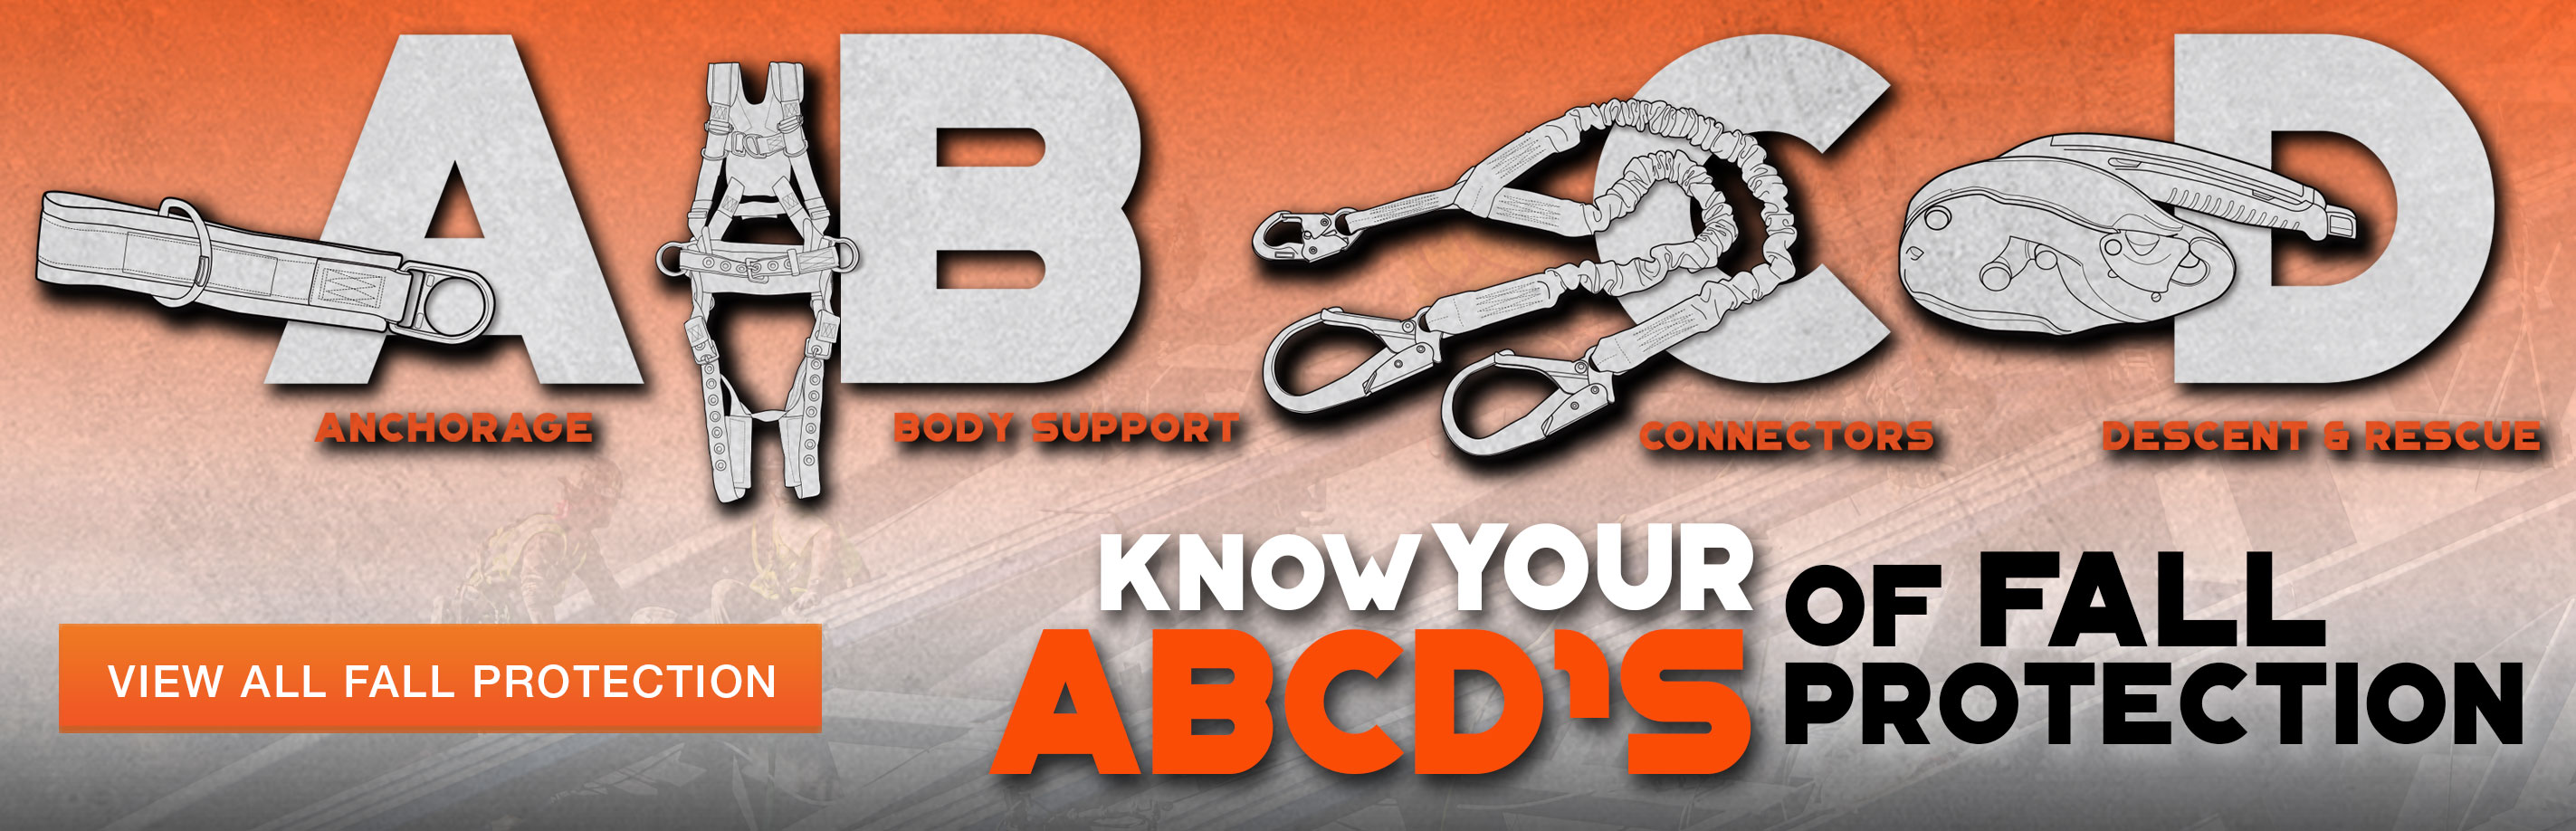 The ABCDs of fall protection at Columbia Safety and Supply